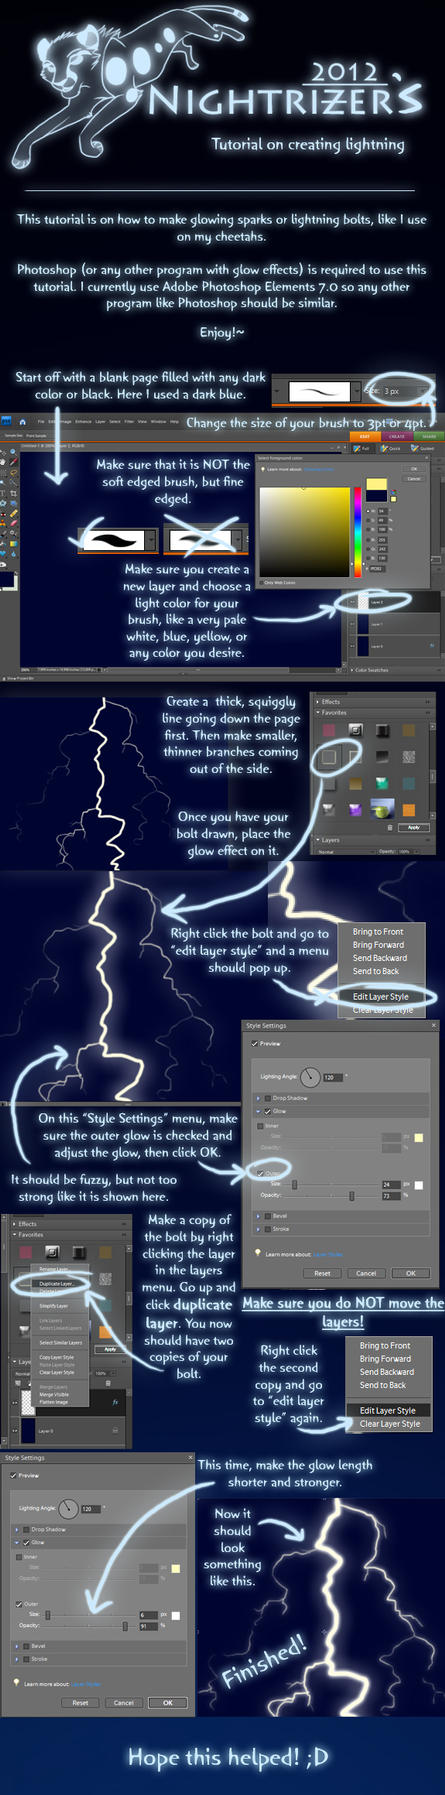 Lightning Tutorial by Nightrizer